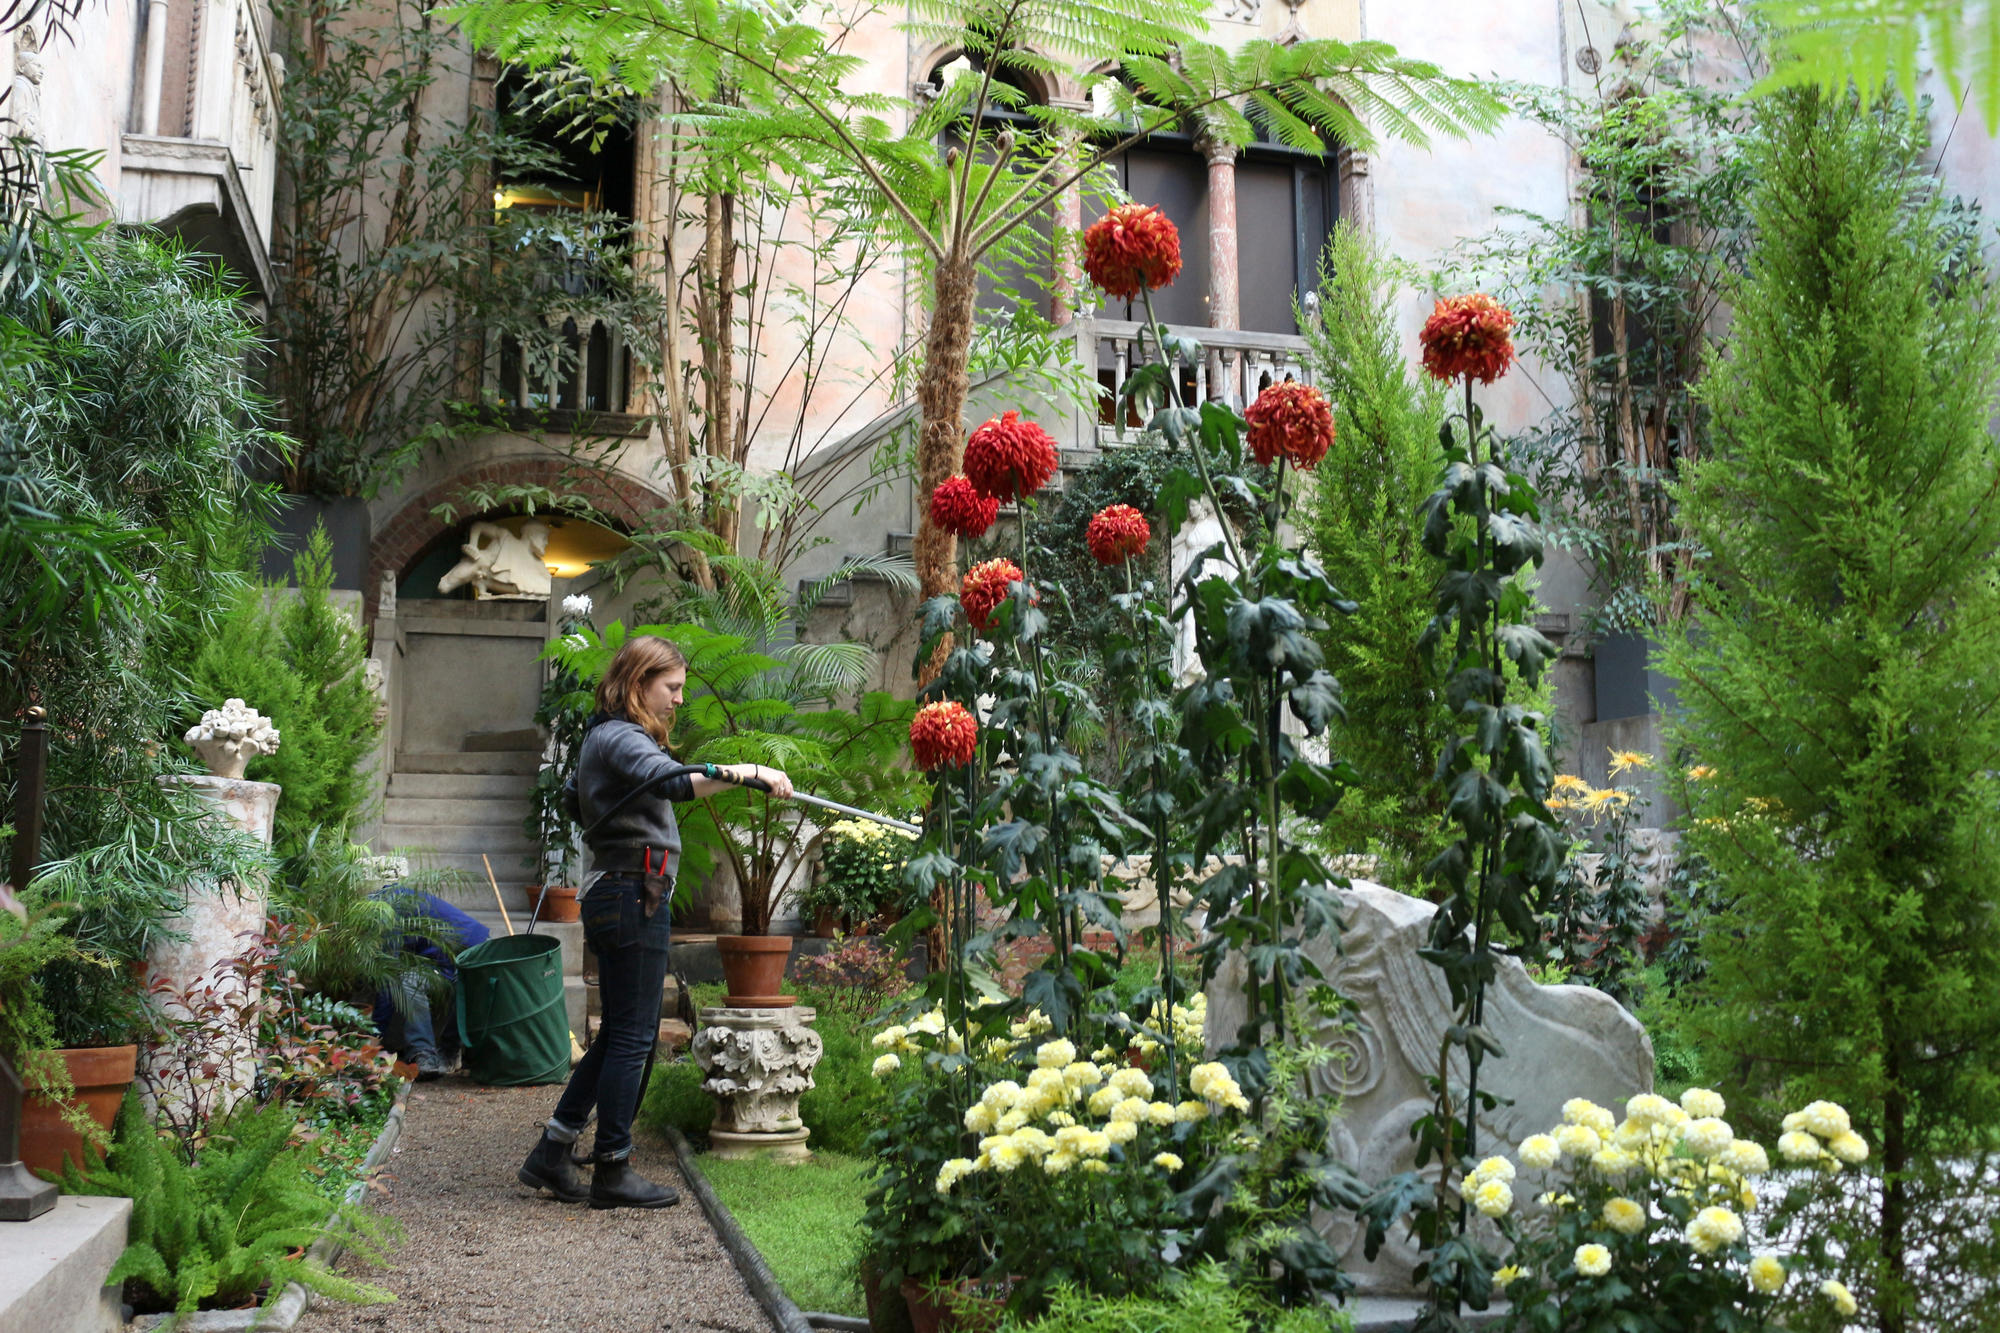 Someone watering the mums in the Courtyard of the Isabella Stewart Gardner Museum.